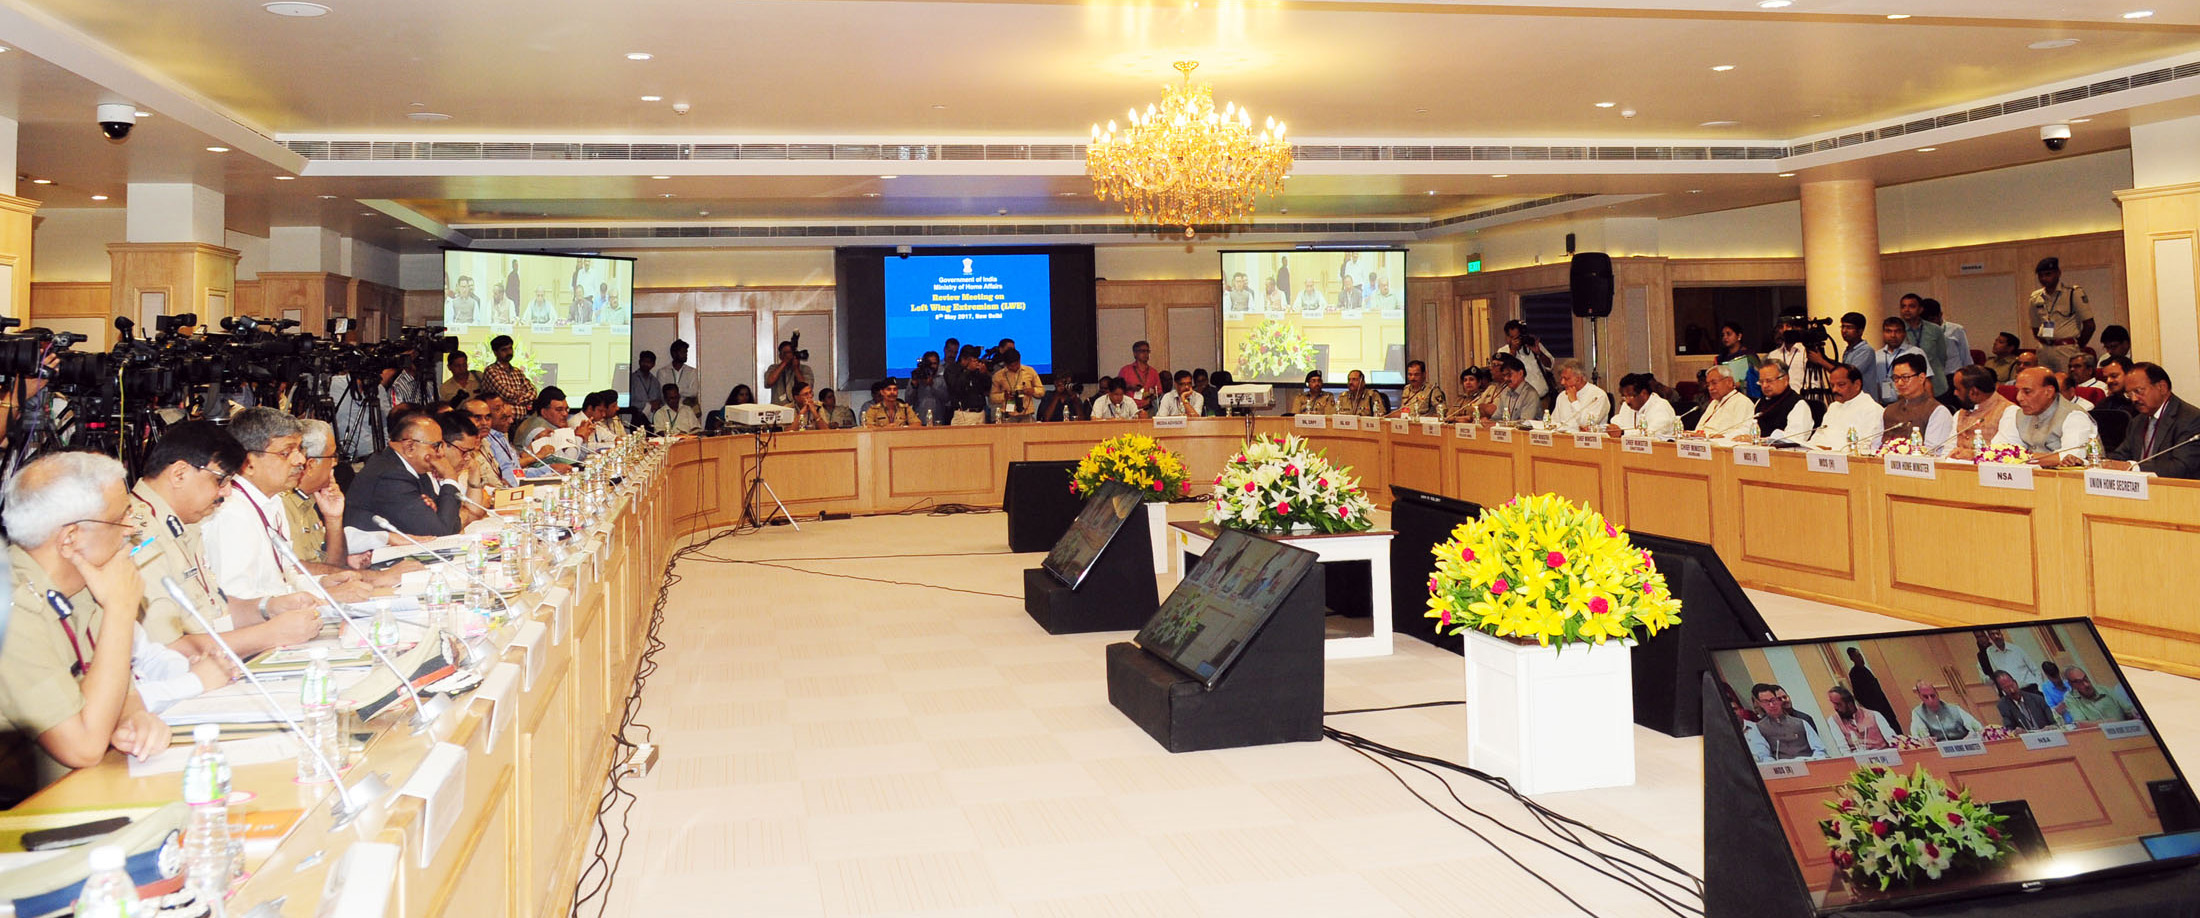 The Union Home Minister, Shri Rajnath Singh chairing the meeting with the Chief Ministers to review the security issues to deal with Left Wing Extremism (LWE), in New Delhi on May 08, 2017. The Senior Officers of Centre and State Governments are also seen.